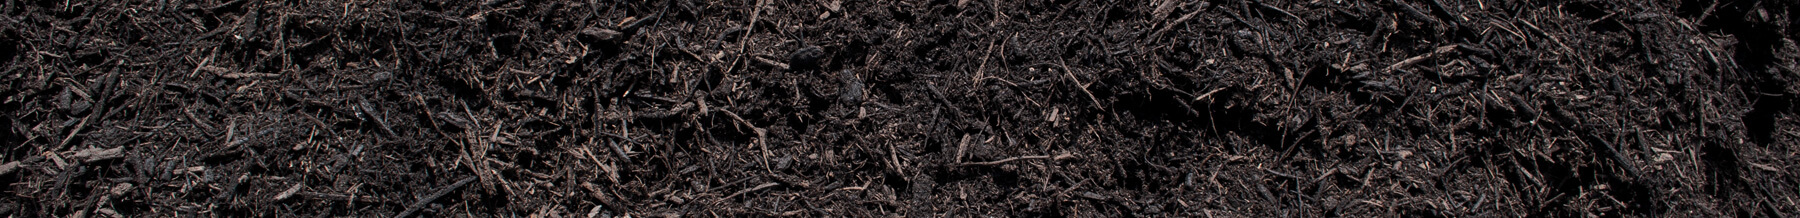 close up wide shot of composted mulch